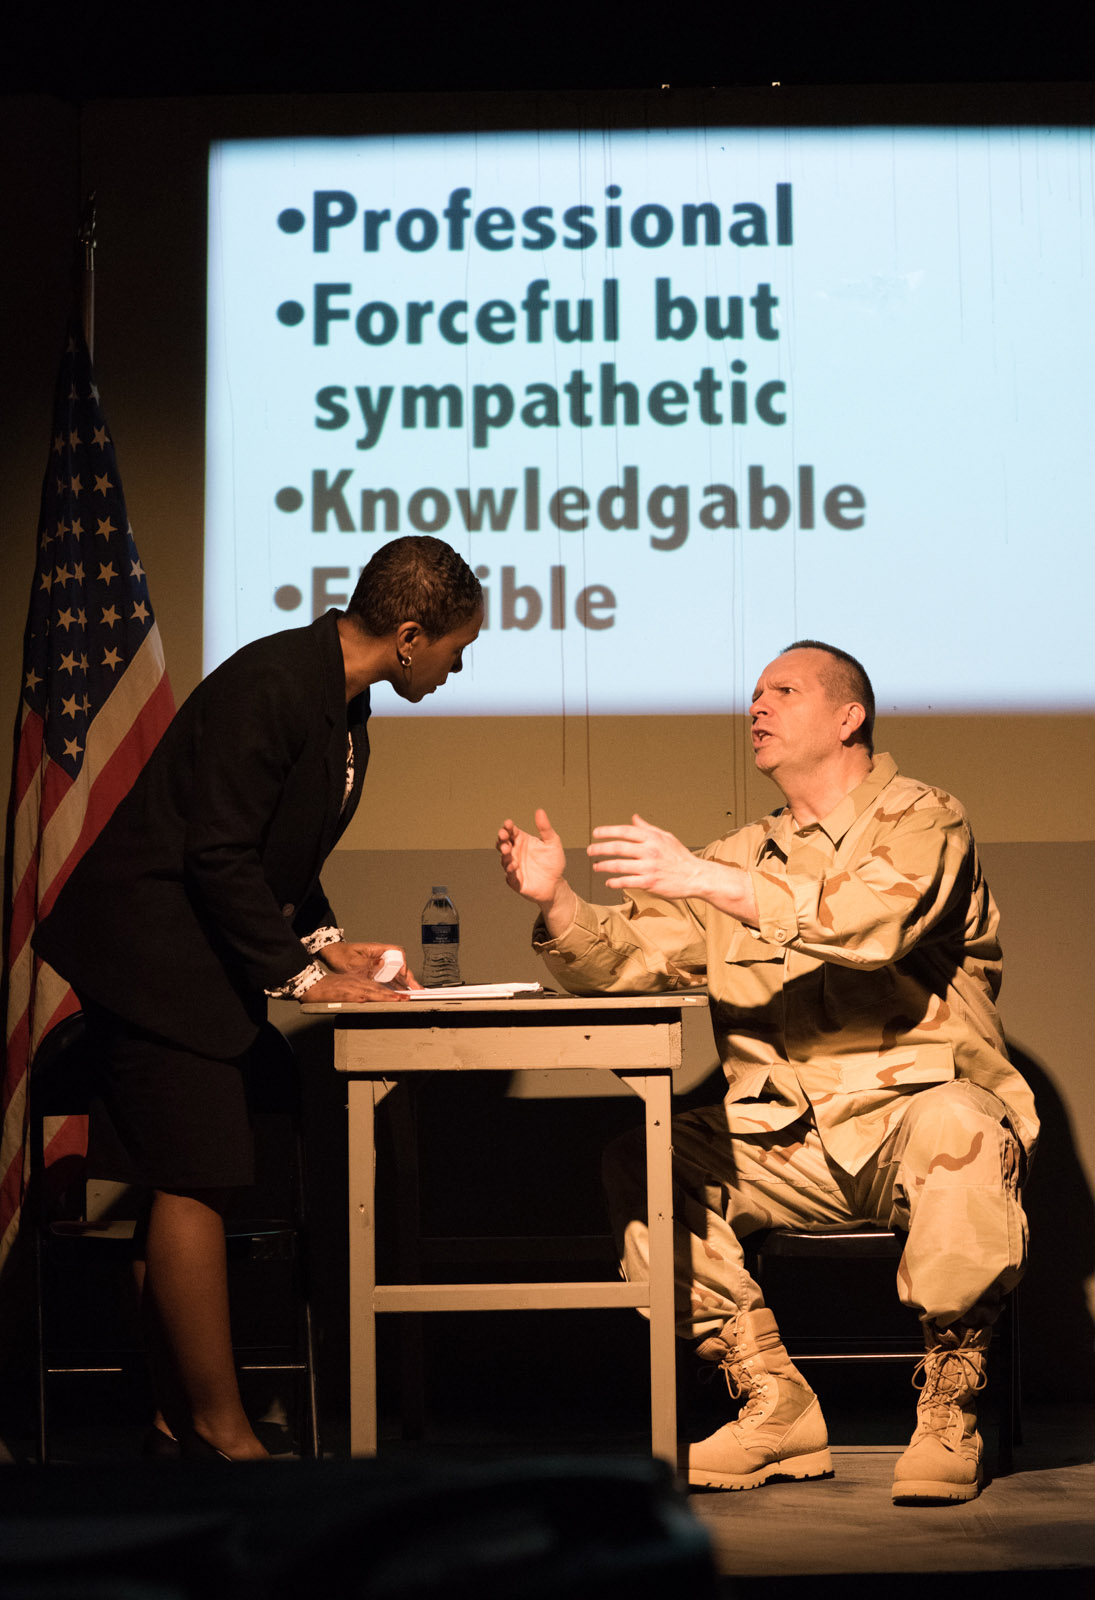 """Shariba Rivers as Dr. O'Brien and Tony St. Clair as Col. Lewis in """"Skin for Skin"""" from The Agency Theatre Collective. Photo by Bill Richert."""